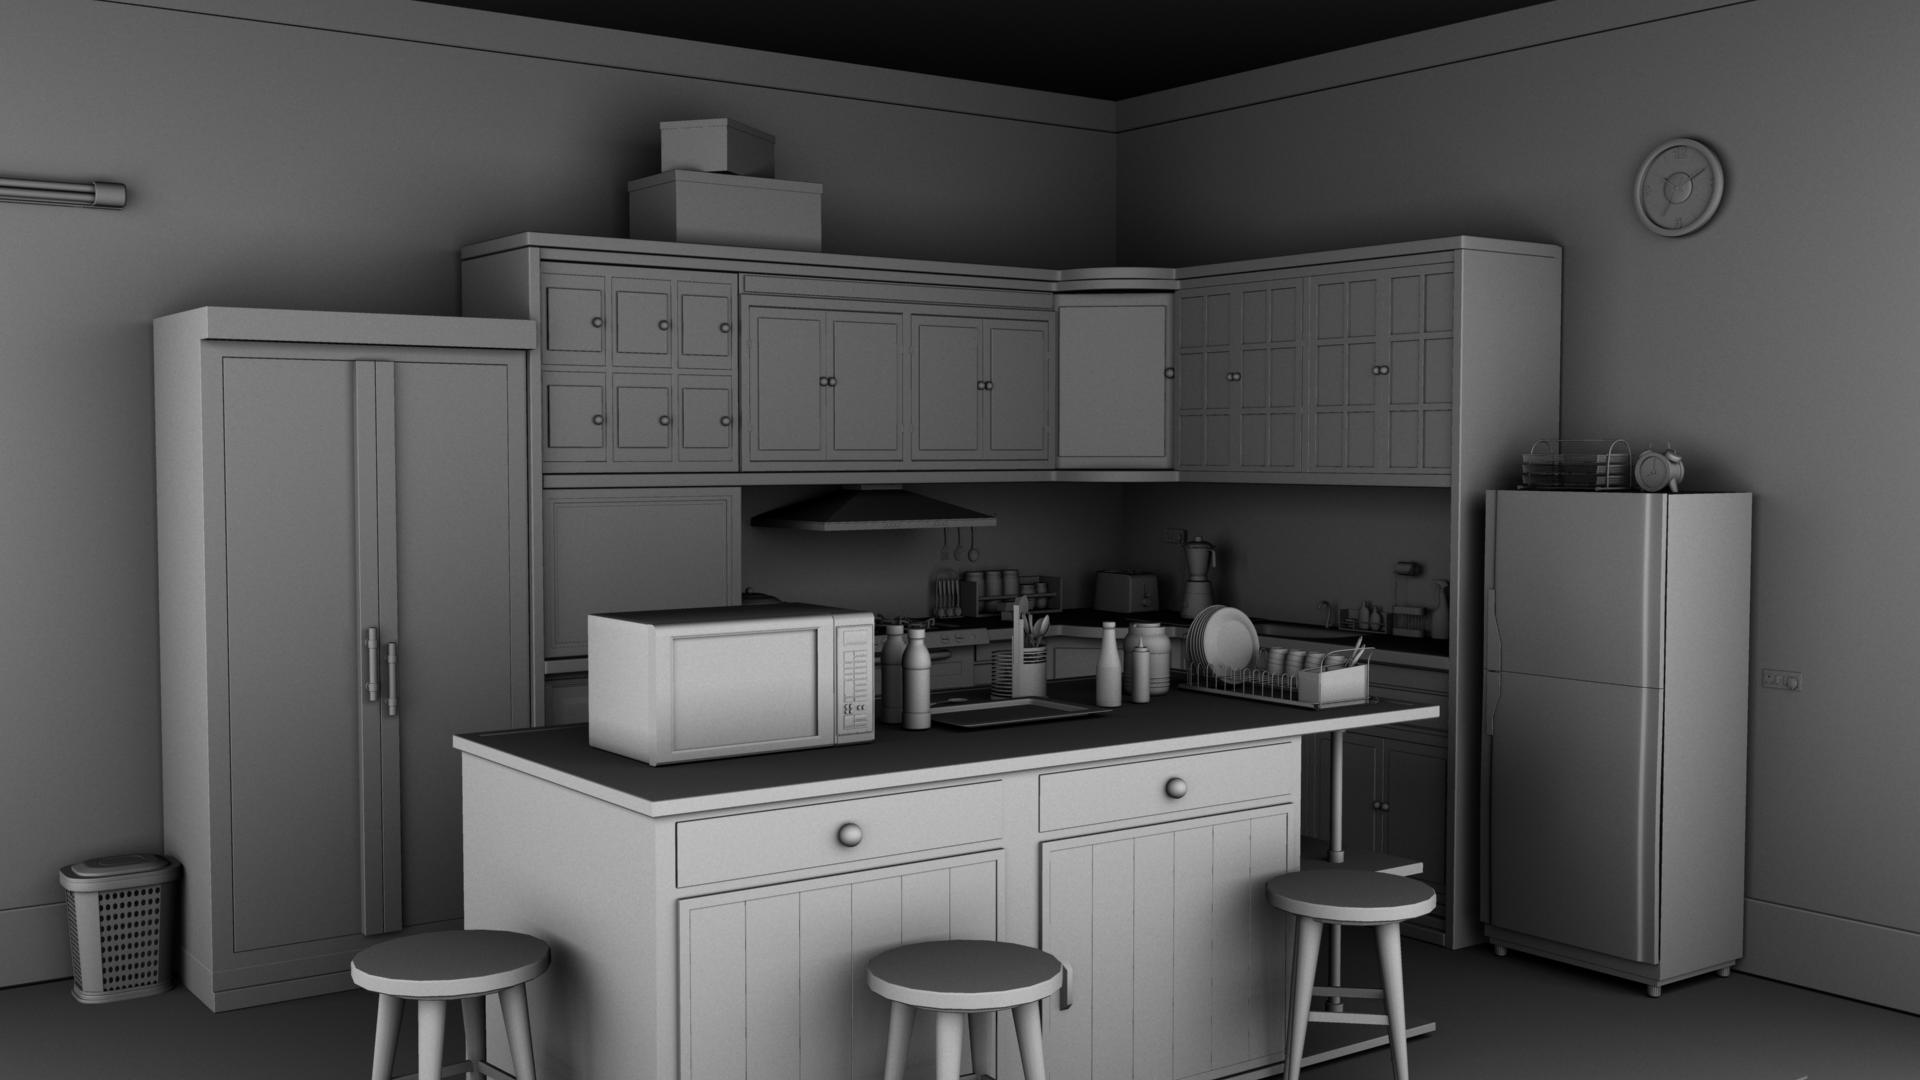 Kitchen 3d model architecture 3d models architecture ar vr for Model kitchen